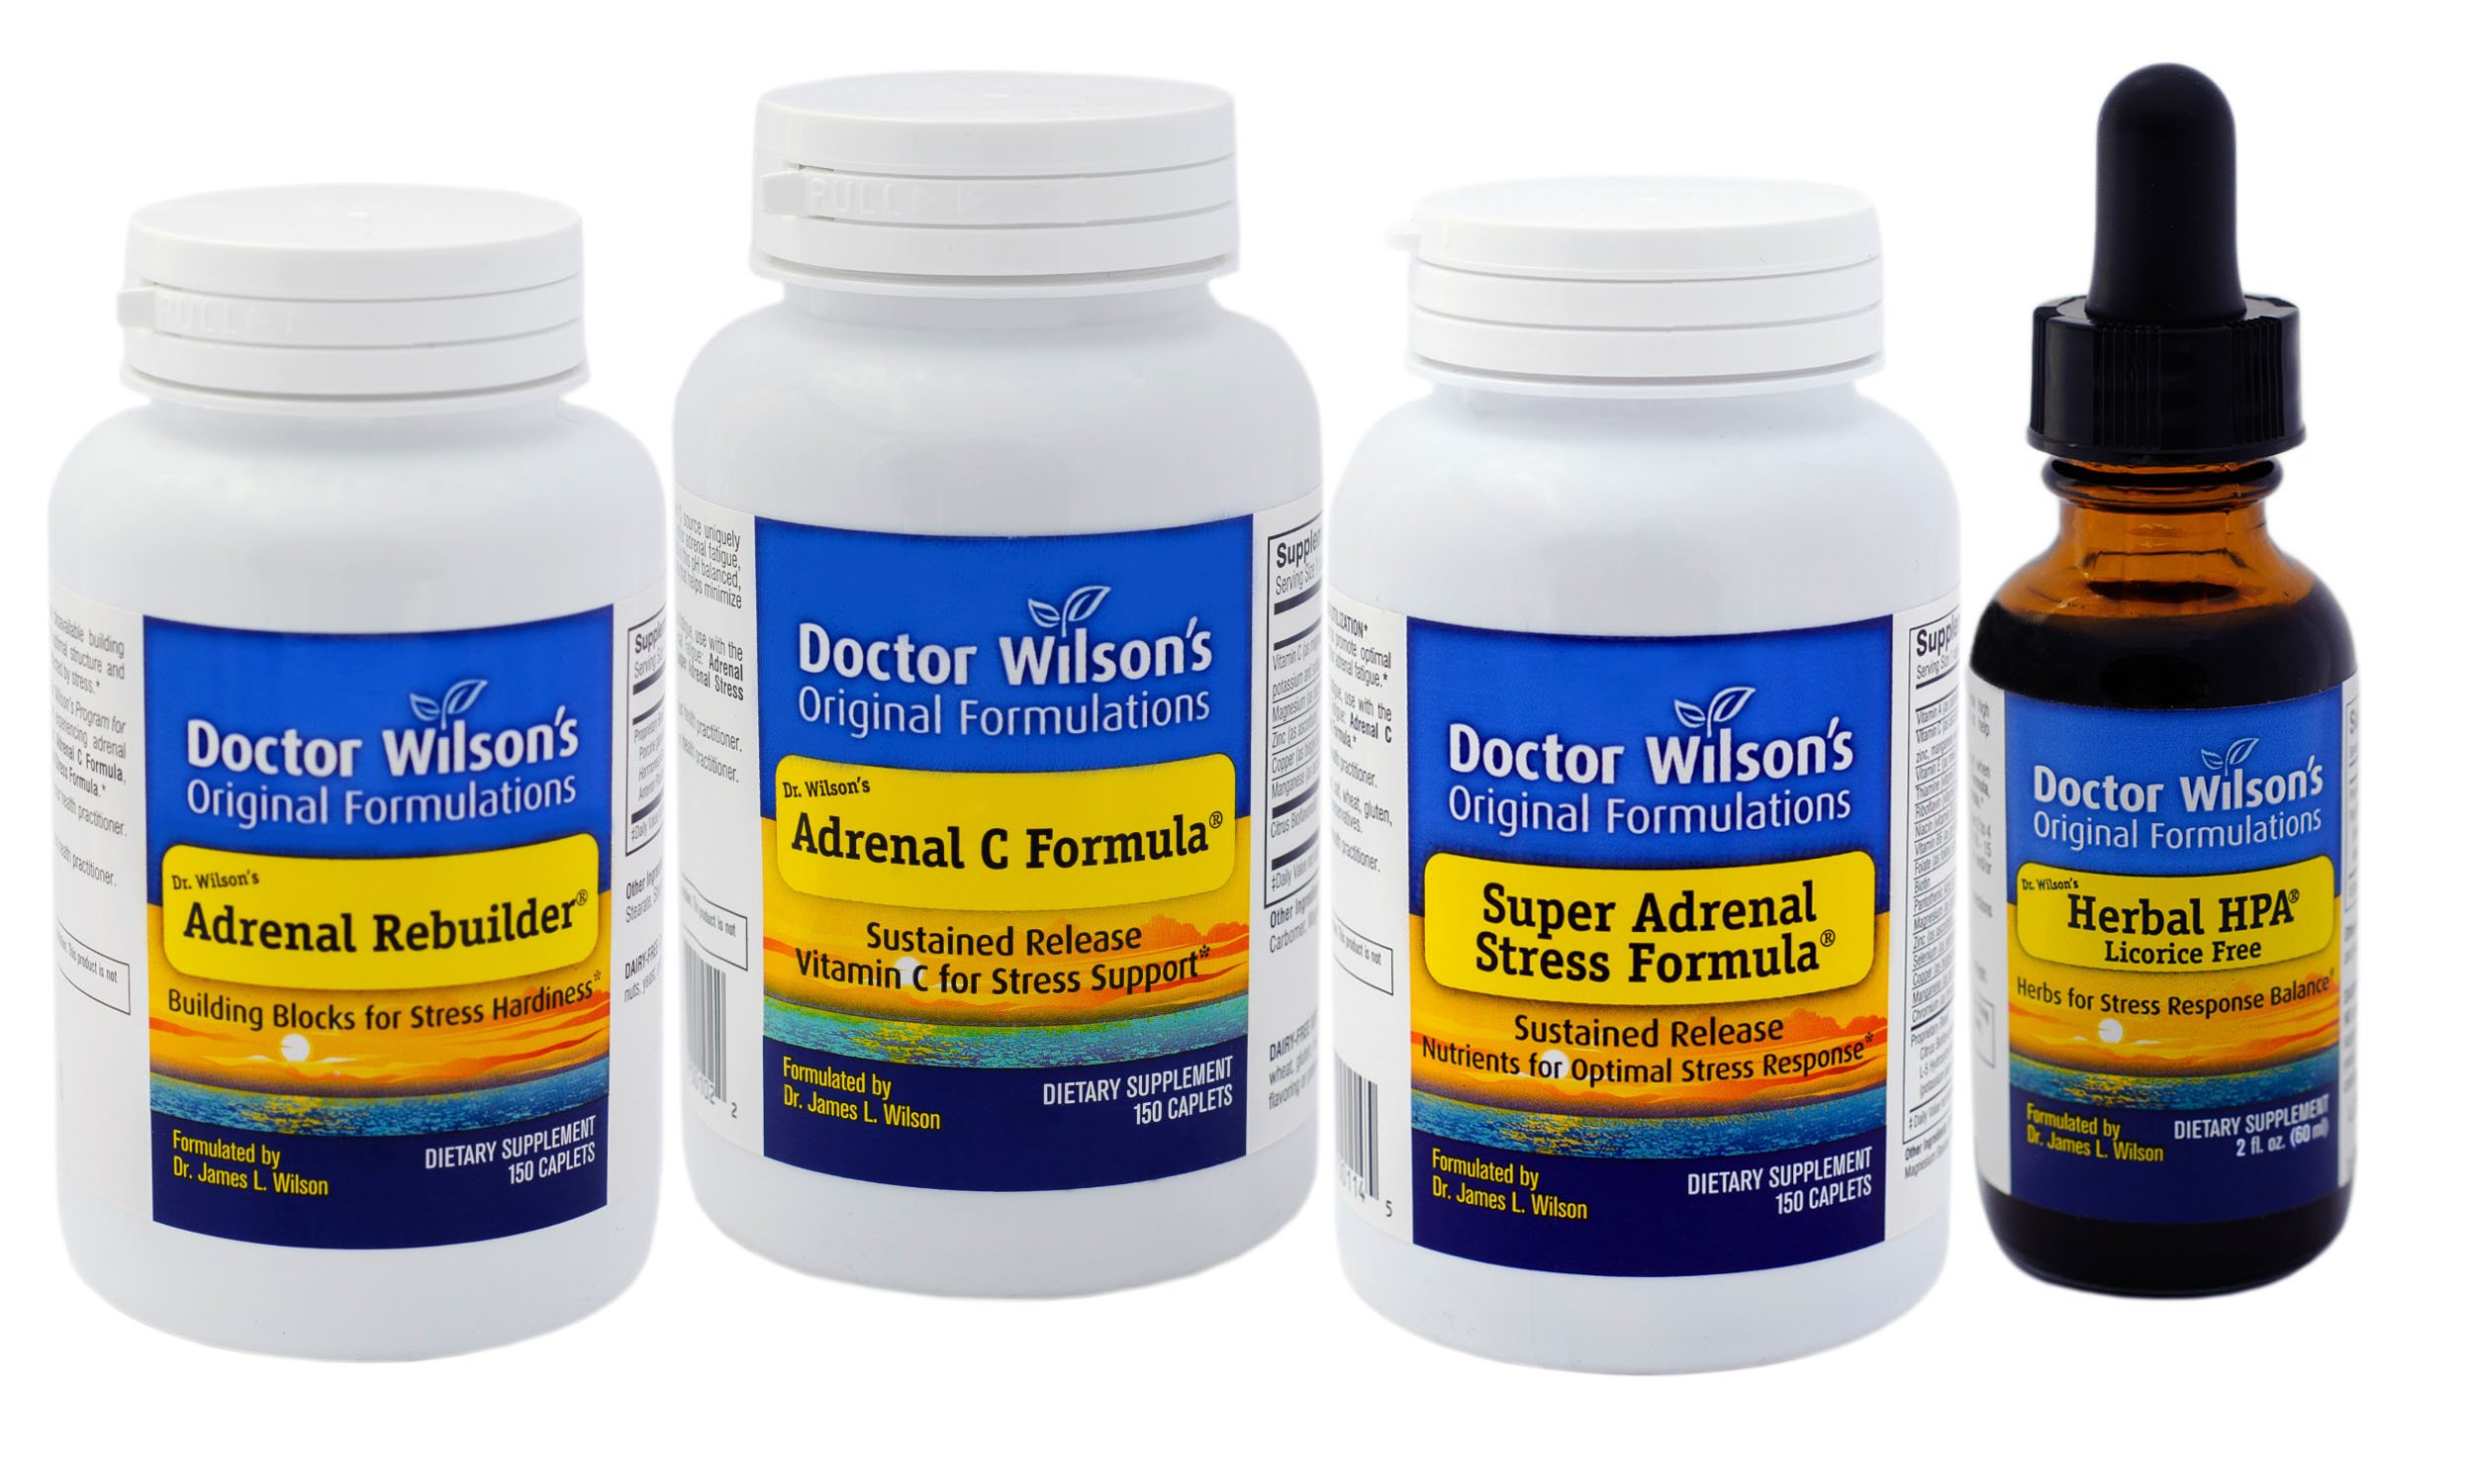 Dr. Wilson's Adrenal Fatigue Quartet (150 Count with HPA 2oz)